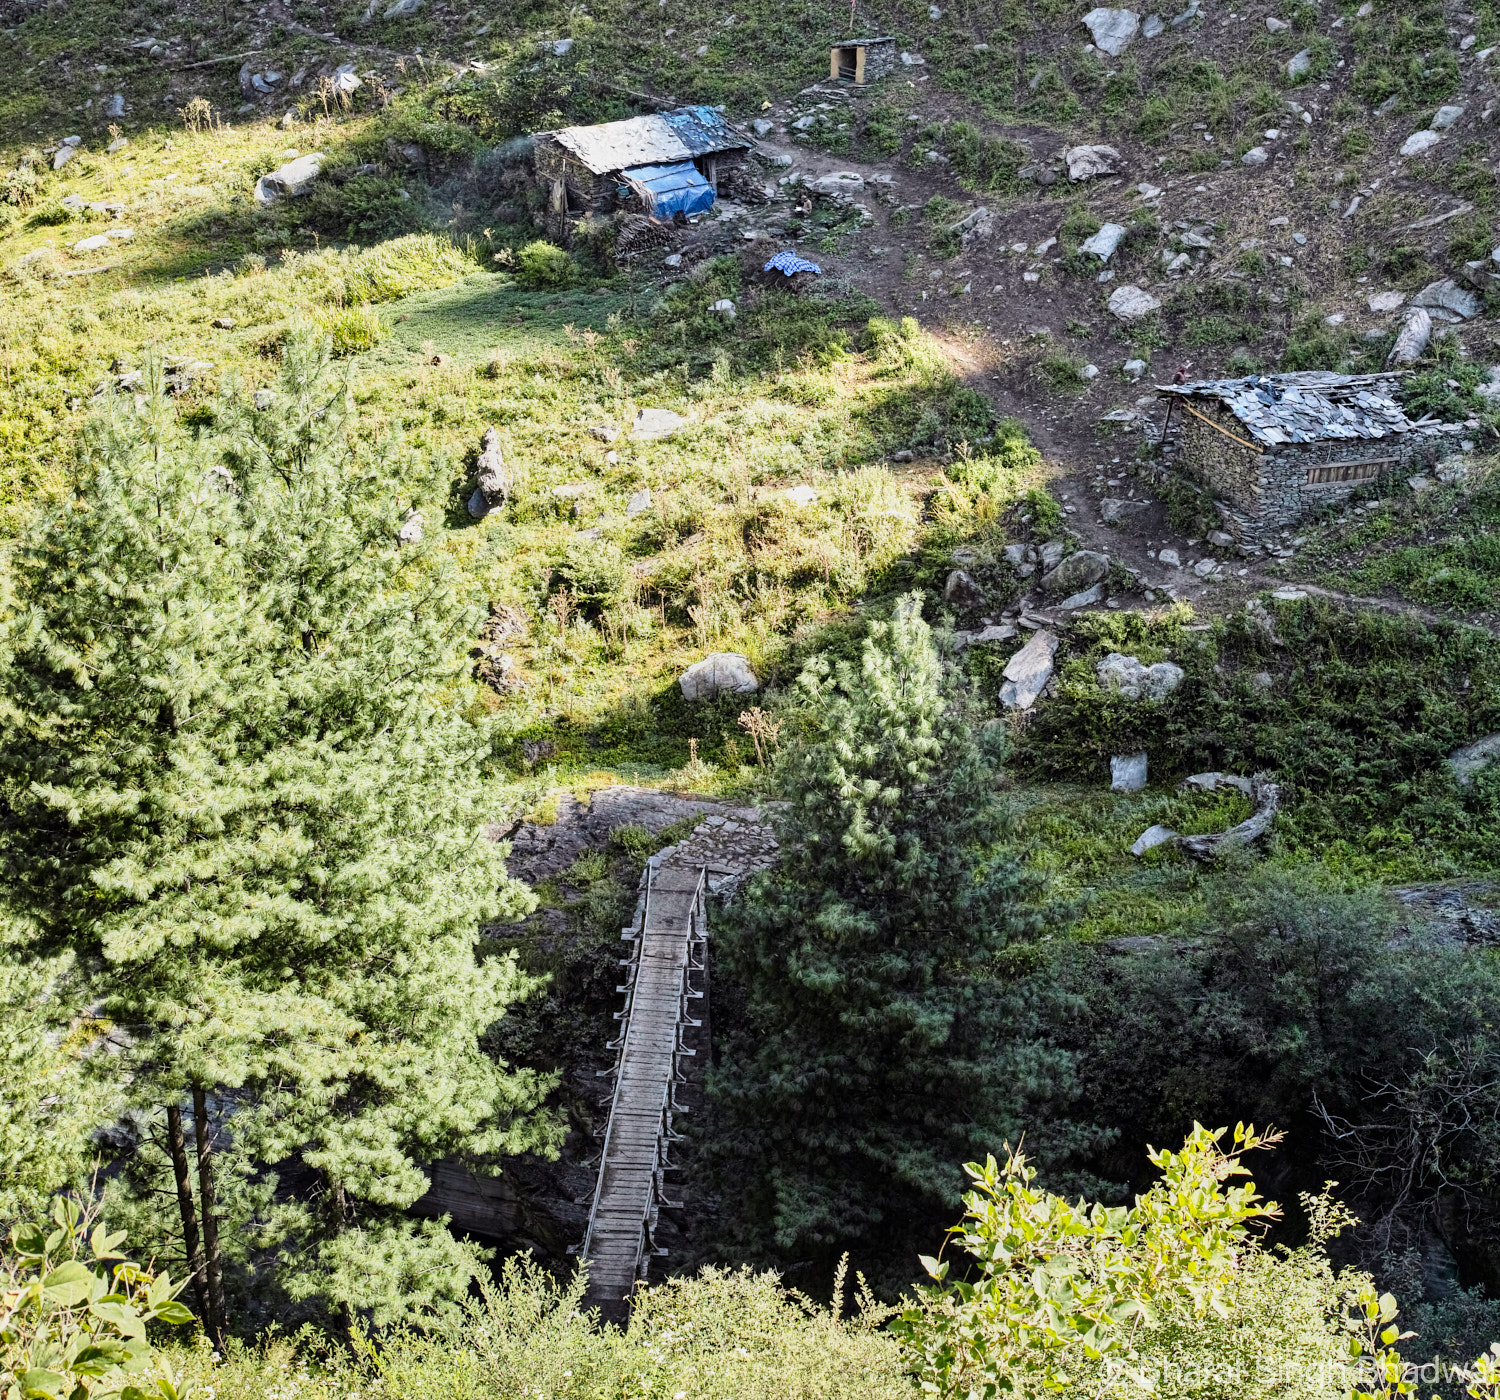 Eagle eye view of Channi campsite when descending from Yada Gothe